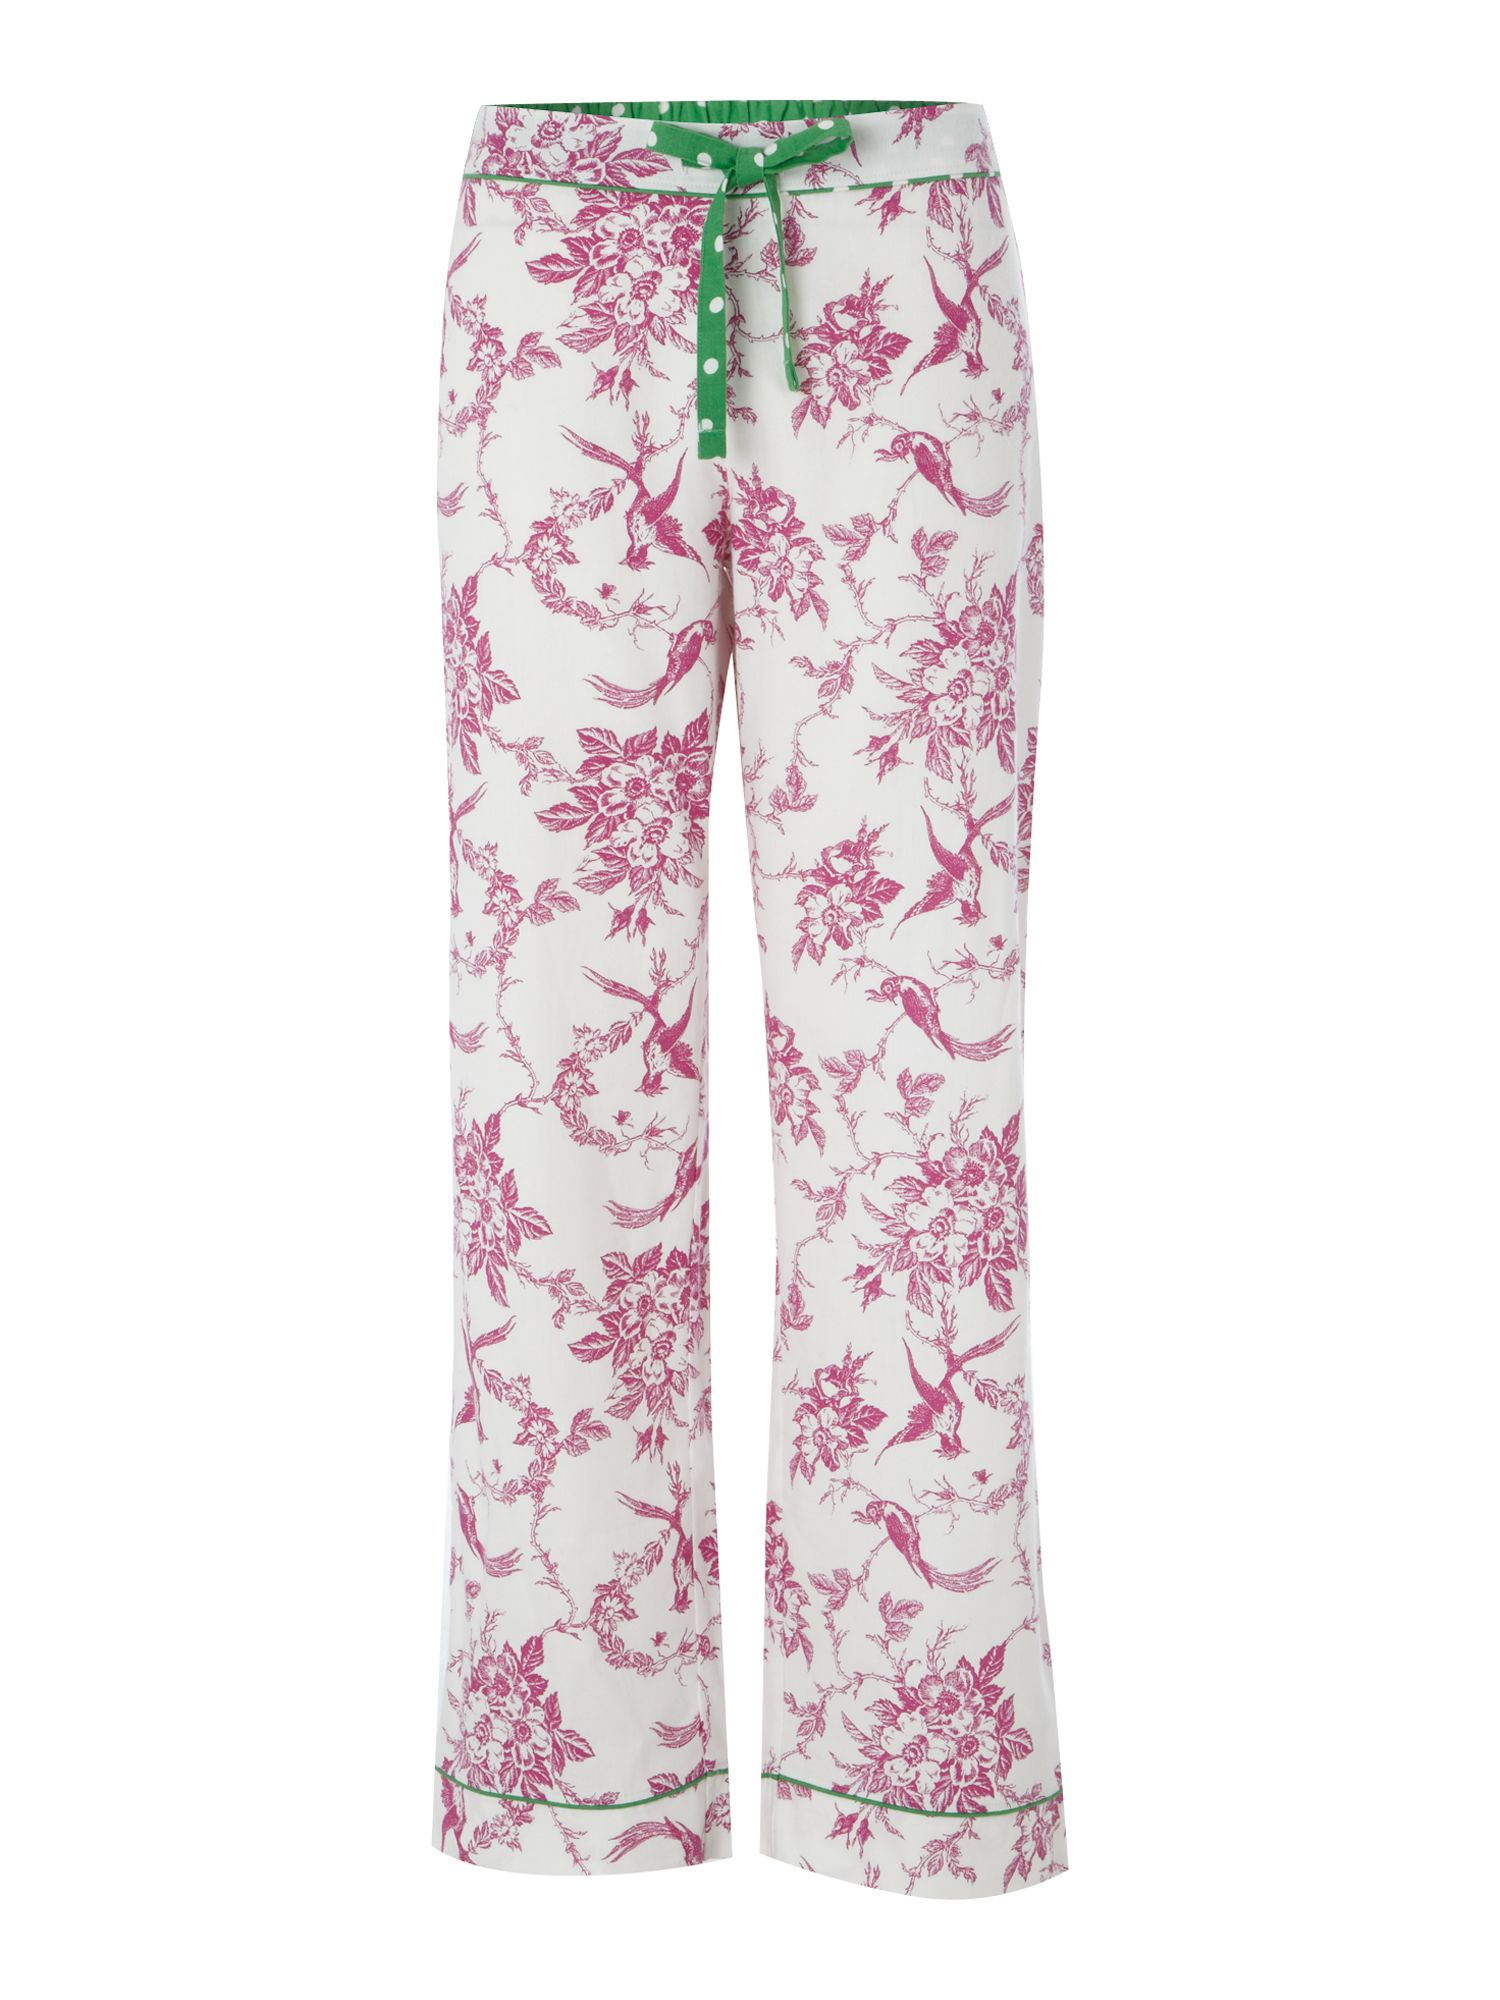 Women's Dickins & Jones Vintage bird print pj pant, Cream